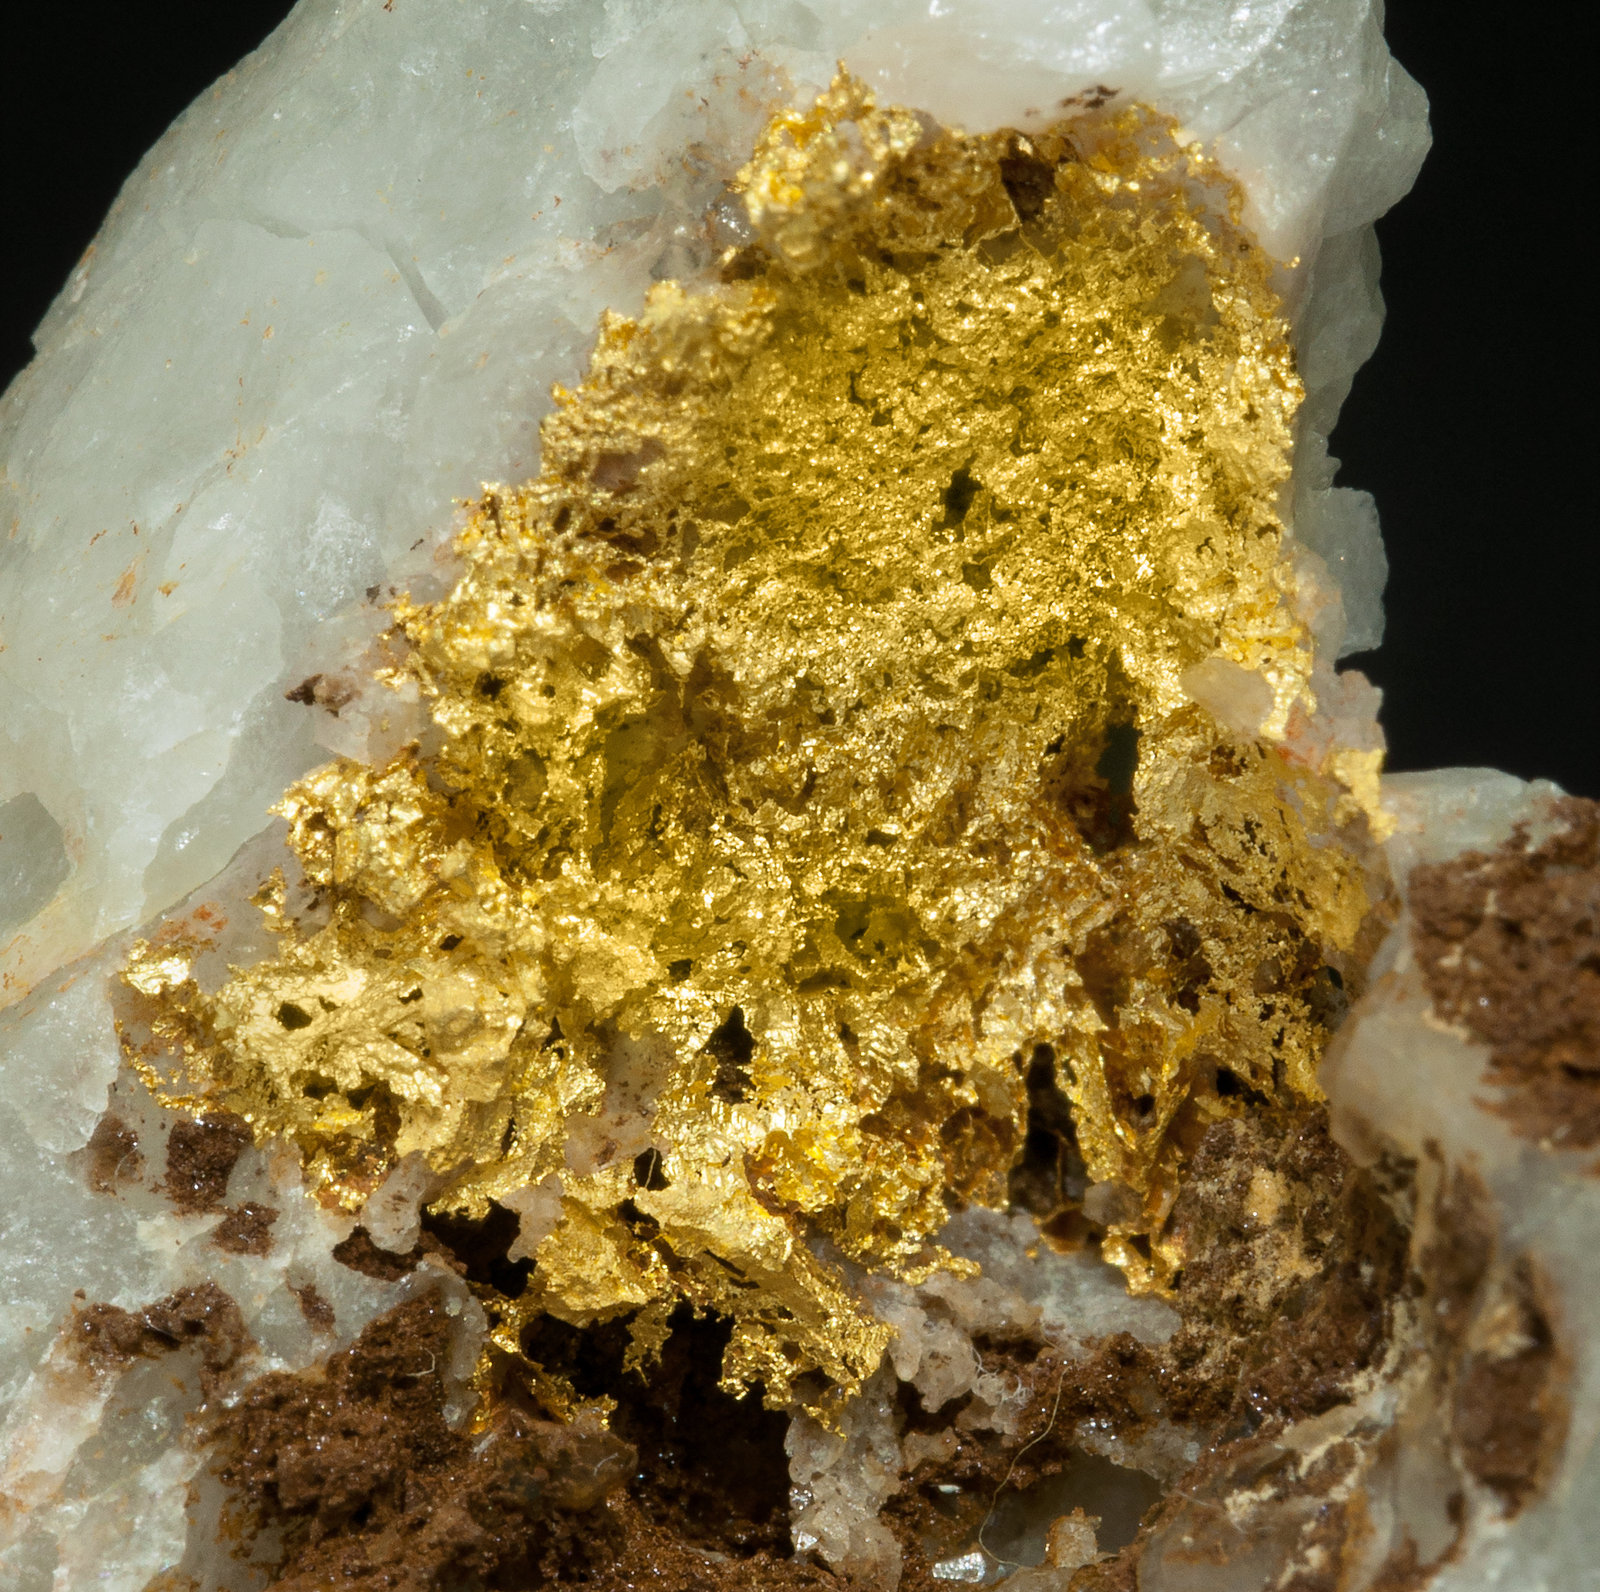 specimens/s_imagesY4/Gold-EA68Y4d.jpg